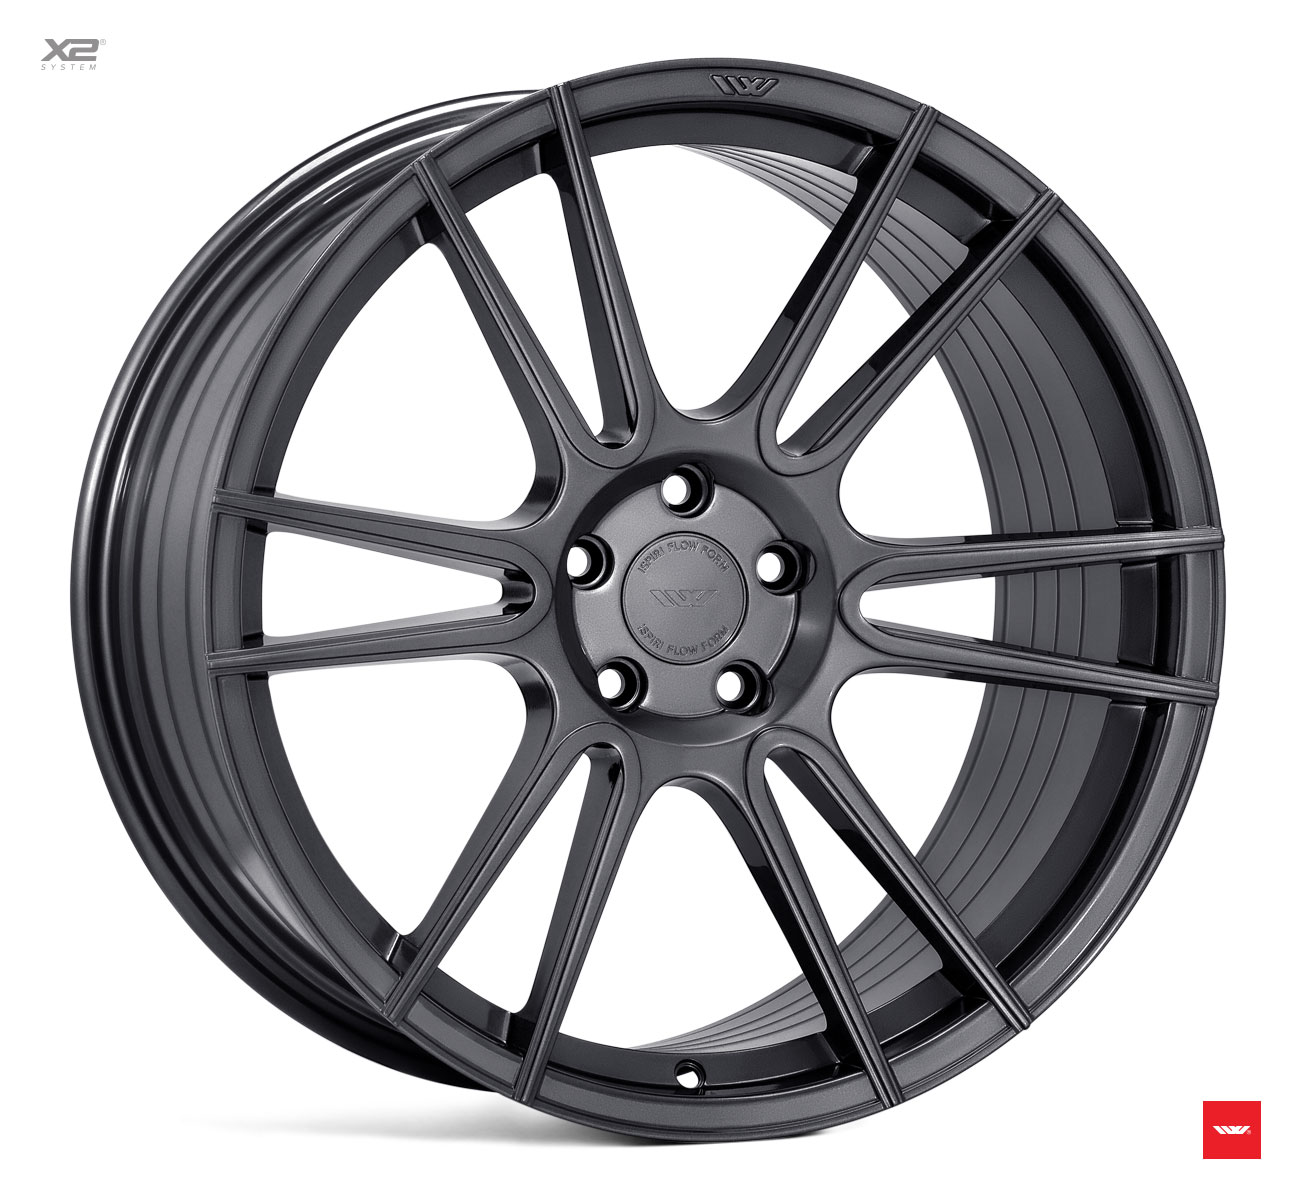 "NEW 20"" ISPIRI FFR7 TWIN CURVED 6 SPOKE ALLOY WHEELS IN CARBON GRAPHITE, VARIOUS FITMENTS AVAILABLE"